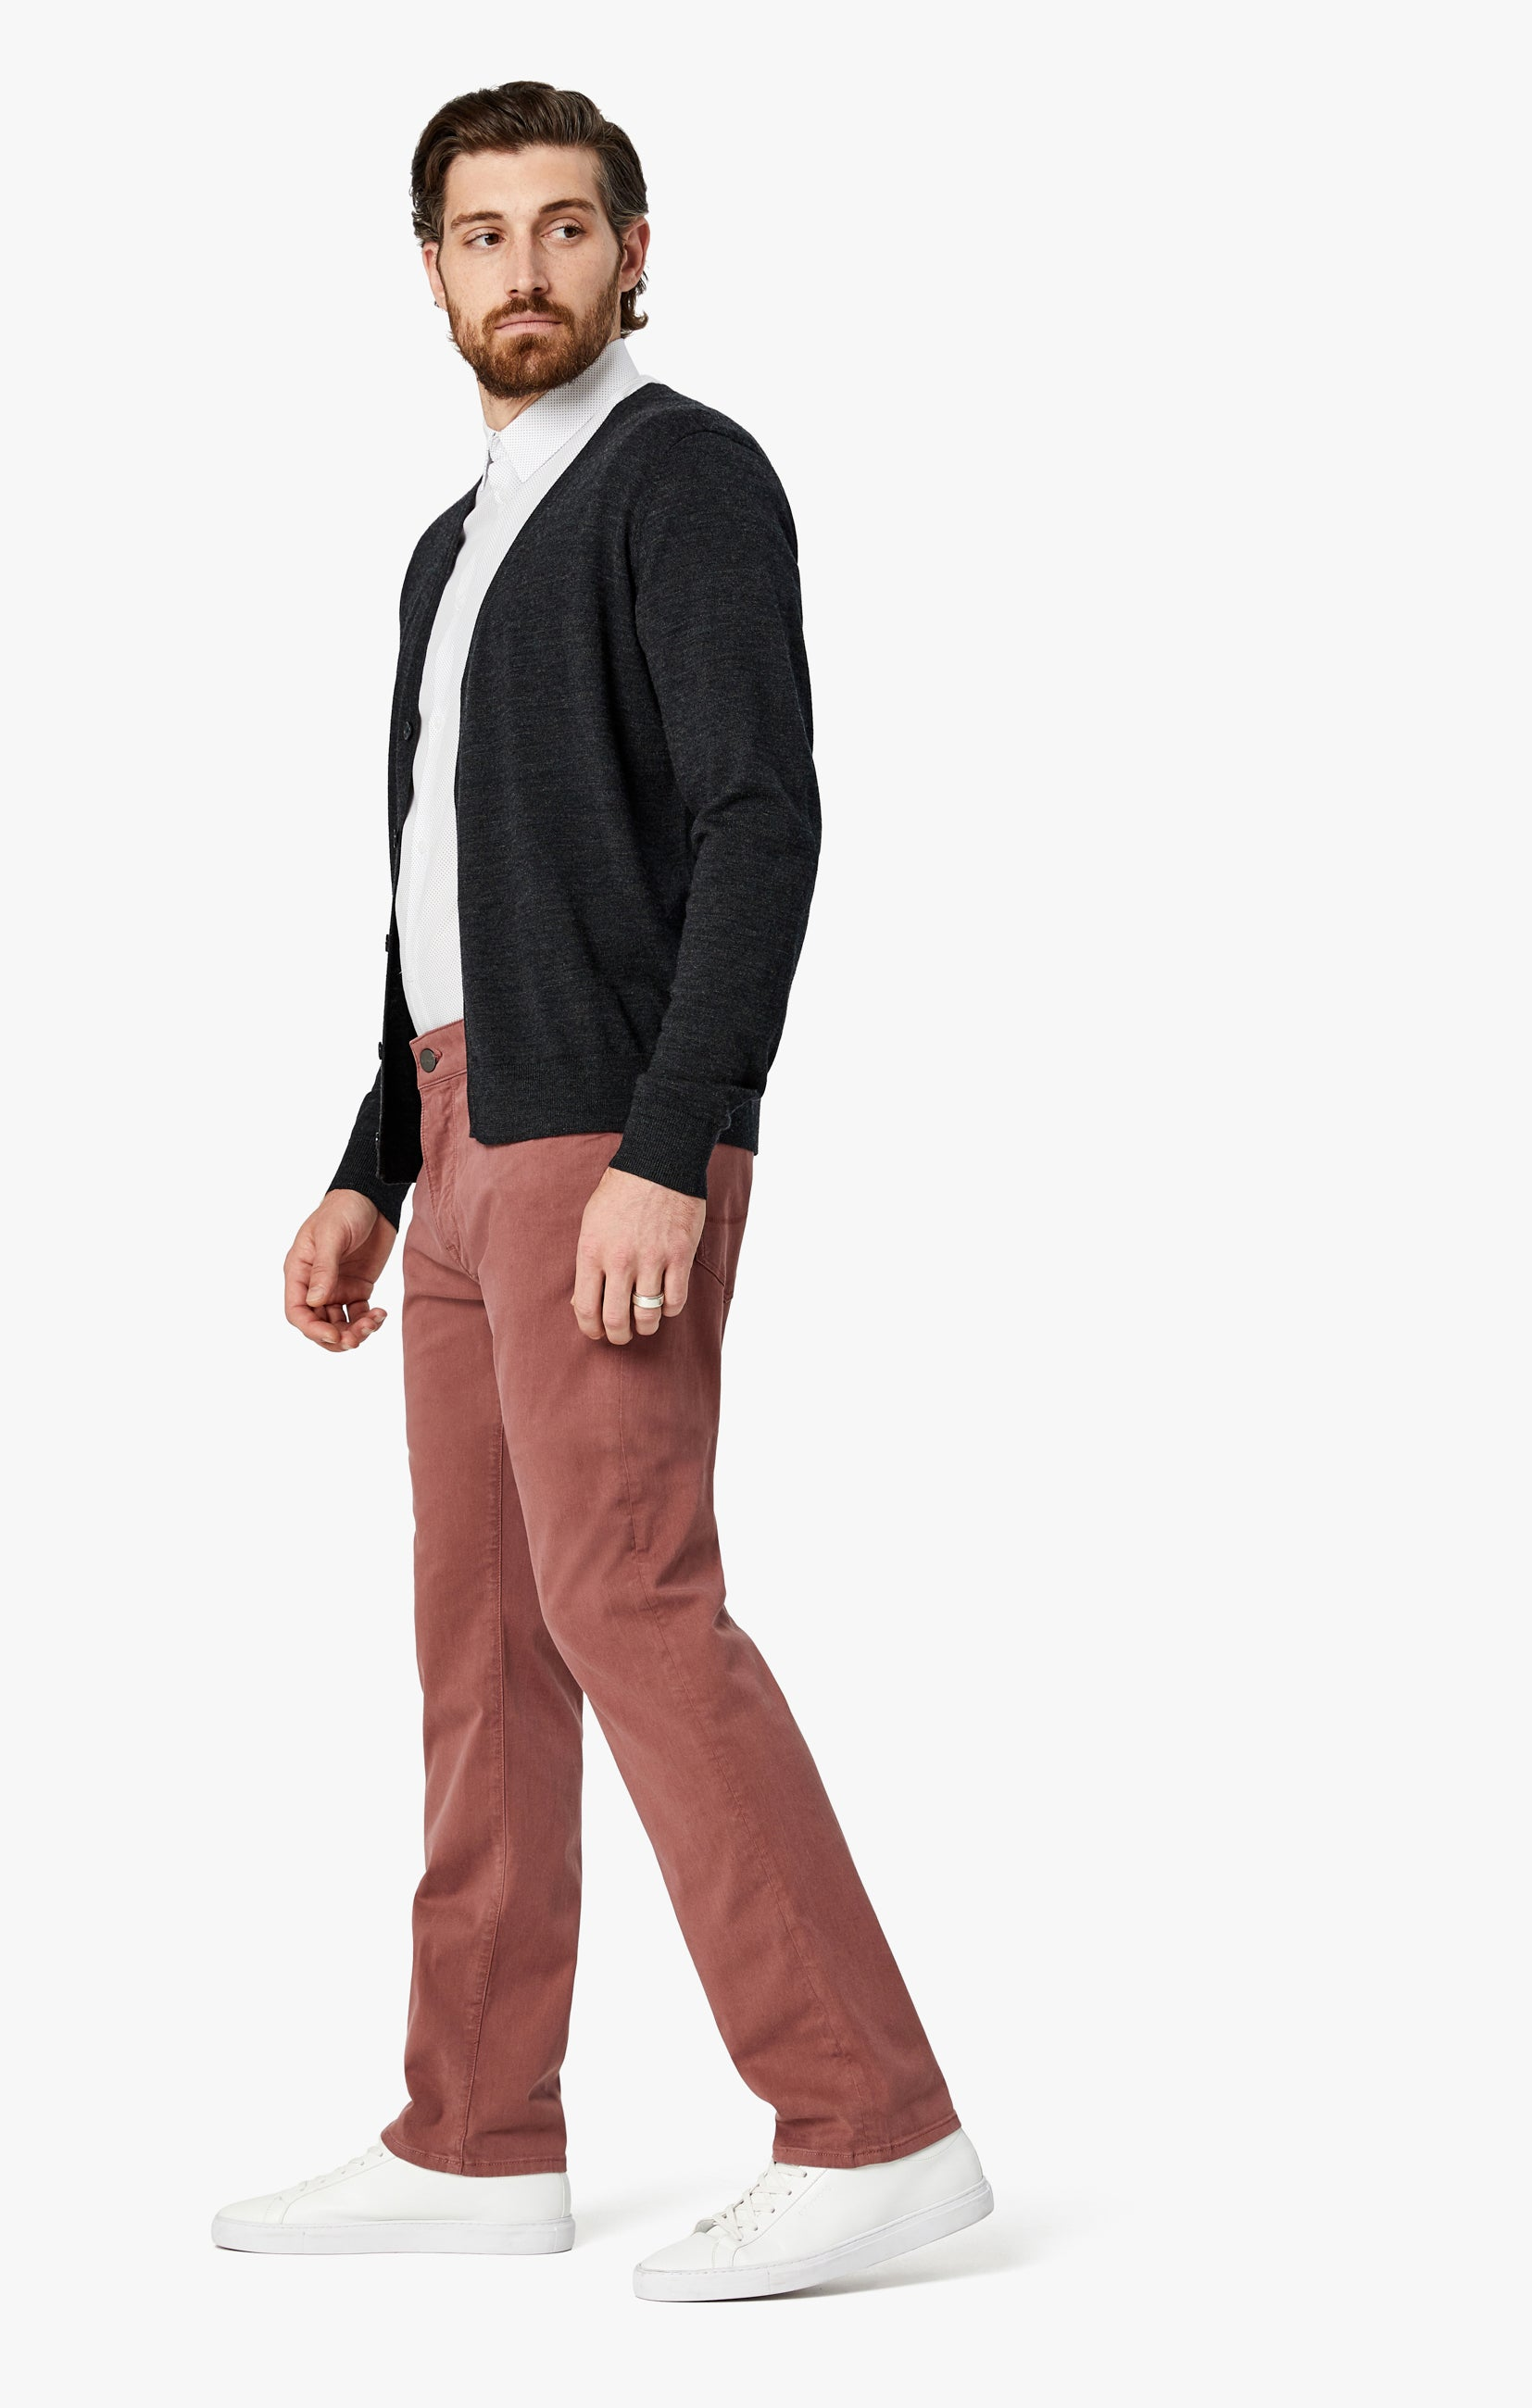 Courage Straight Leg Pants in Berry Twill Image 2